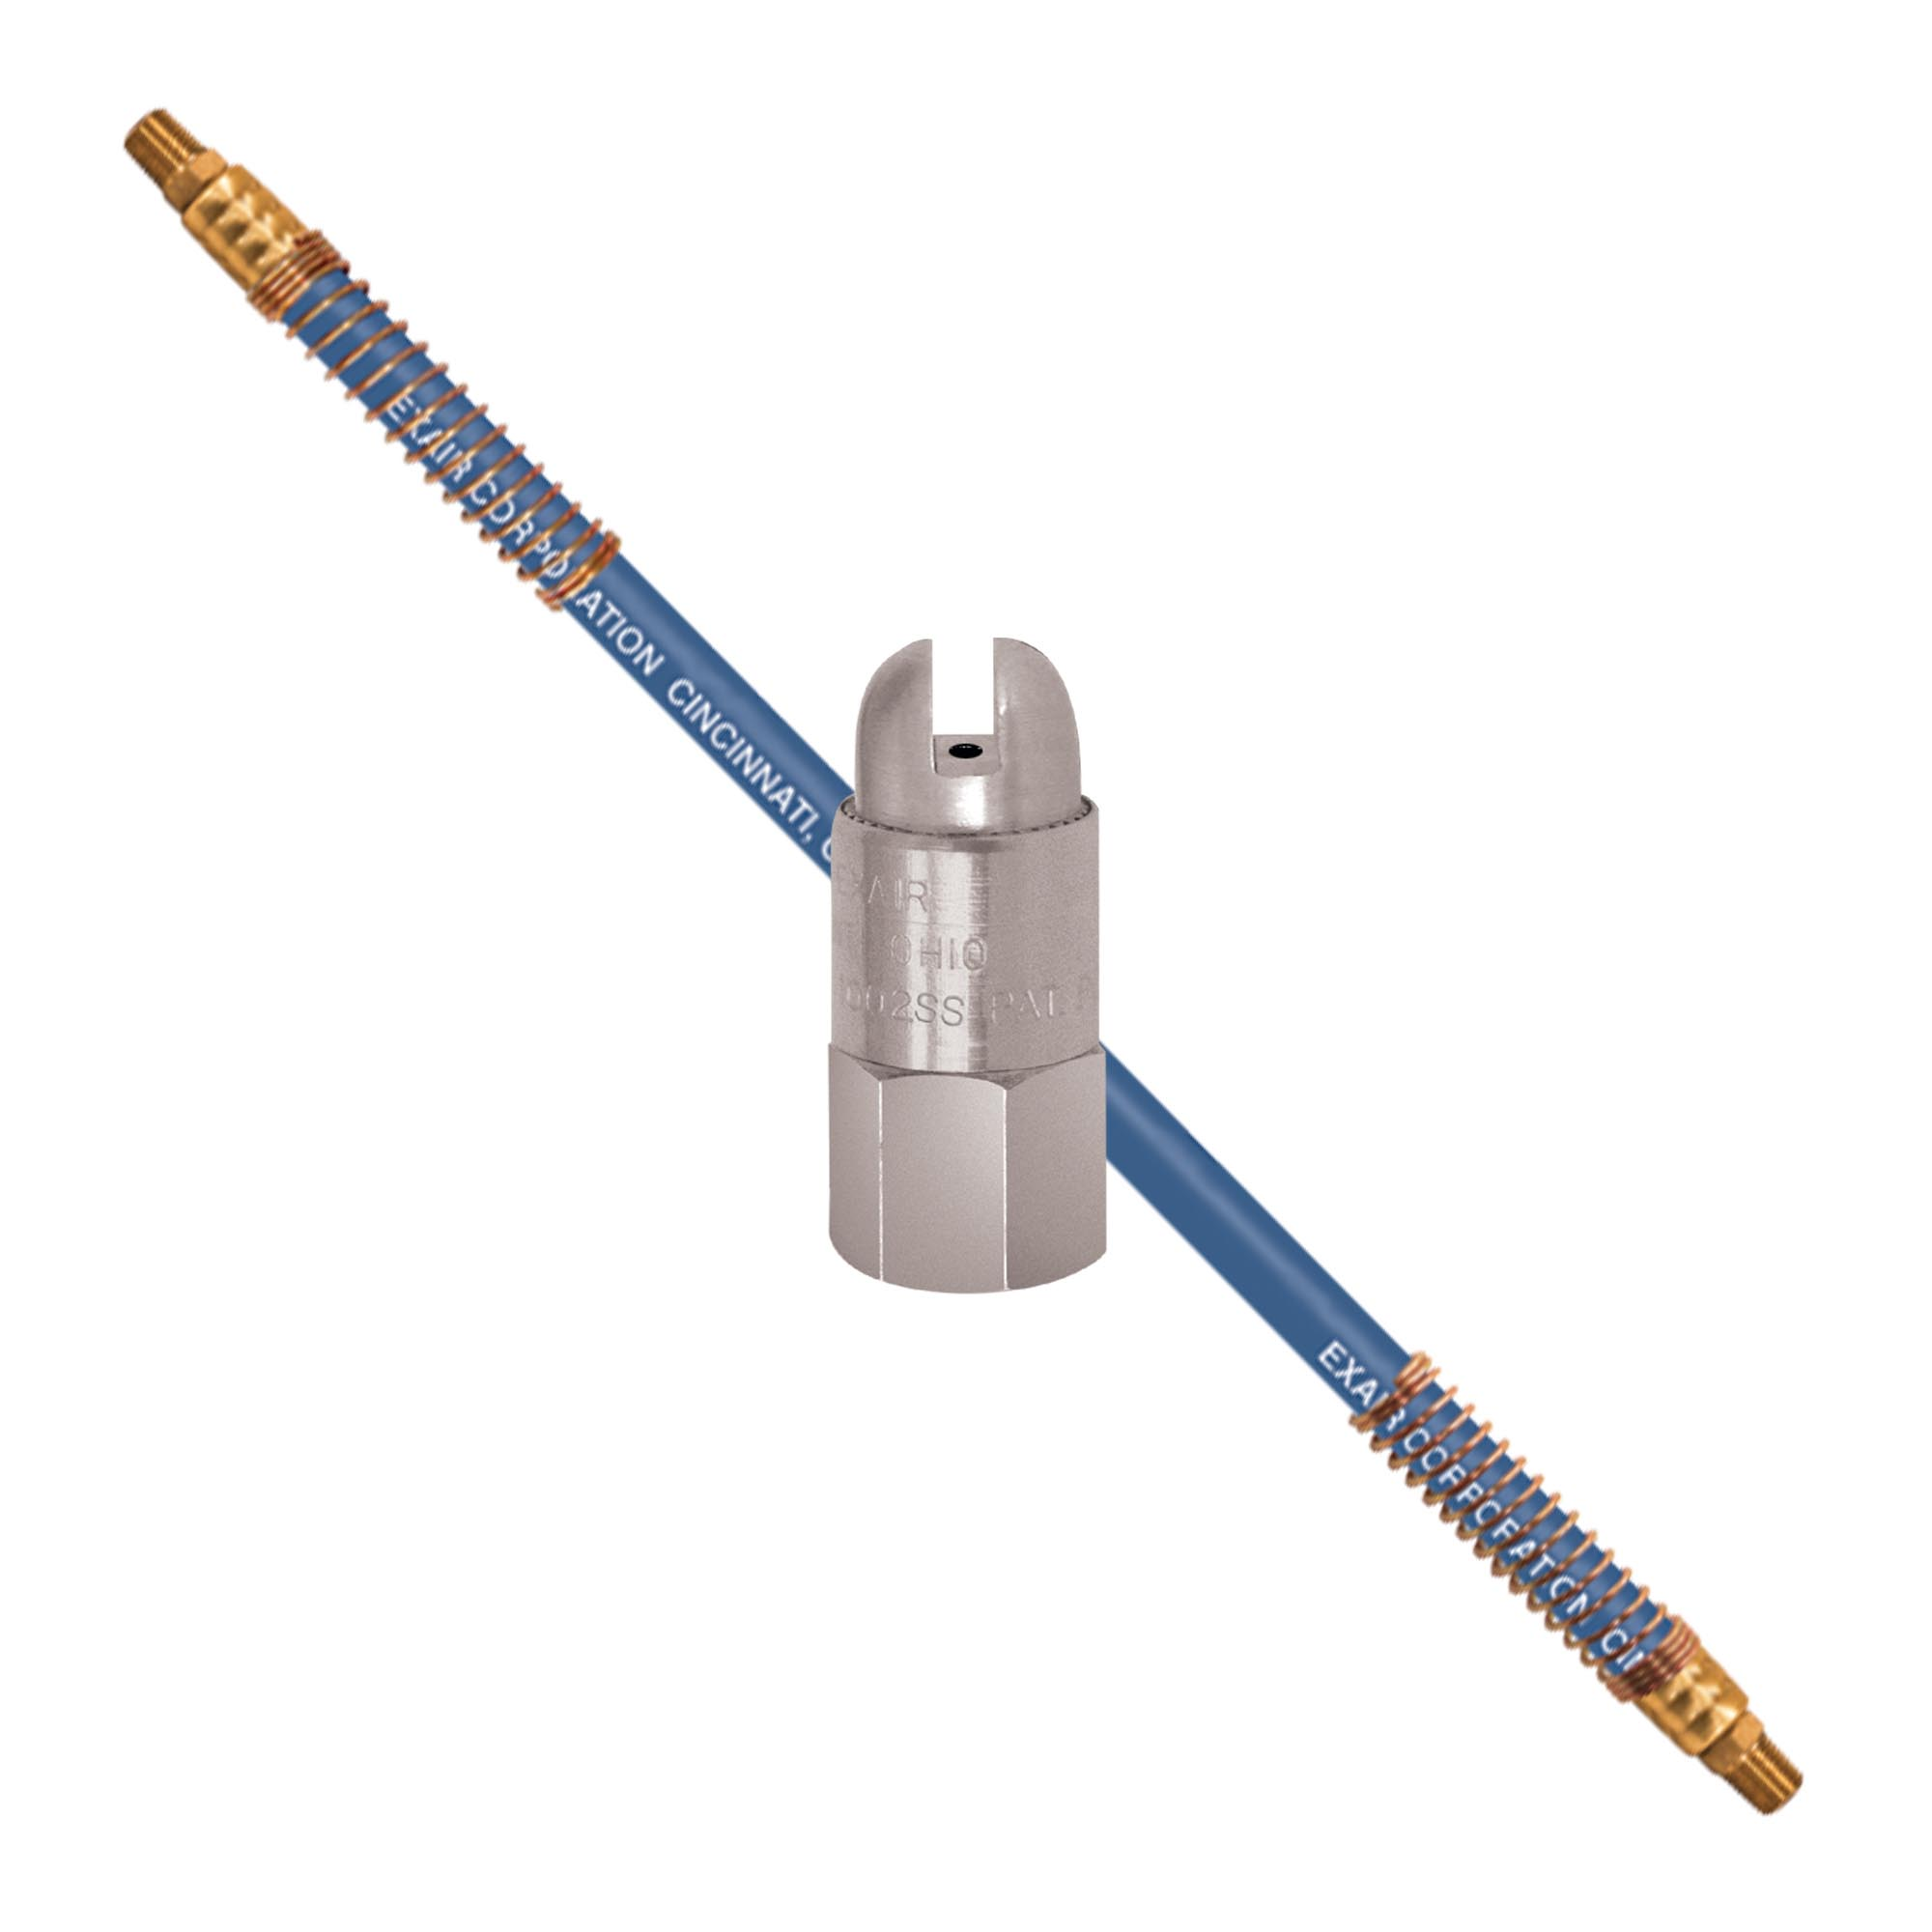 Model HP1002SS-9206 Stainless Steel High Power Safety Air Nozzle and Stay Set Hose aims the nozzle precisely where intended